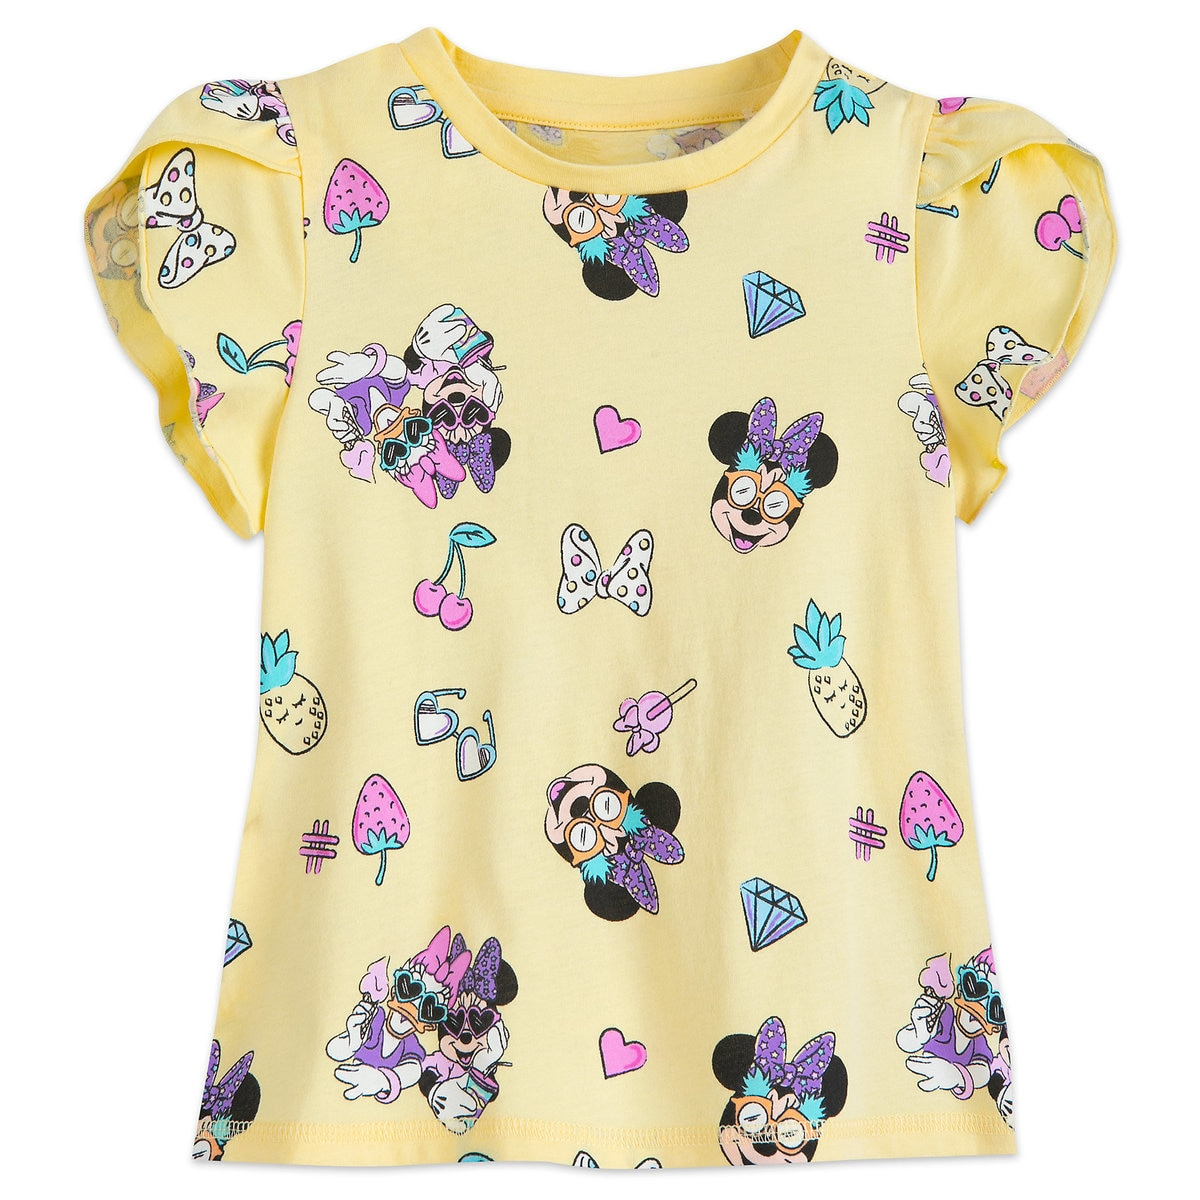 61a90bd1 Product Image of Minnie Mouse and Daisy Duck T-Shirt for Girls # 1